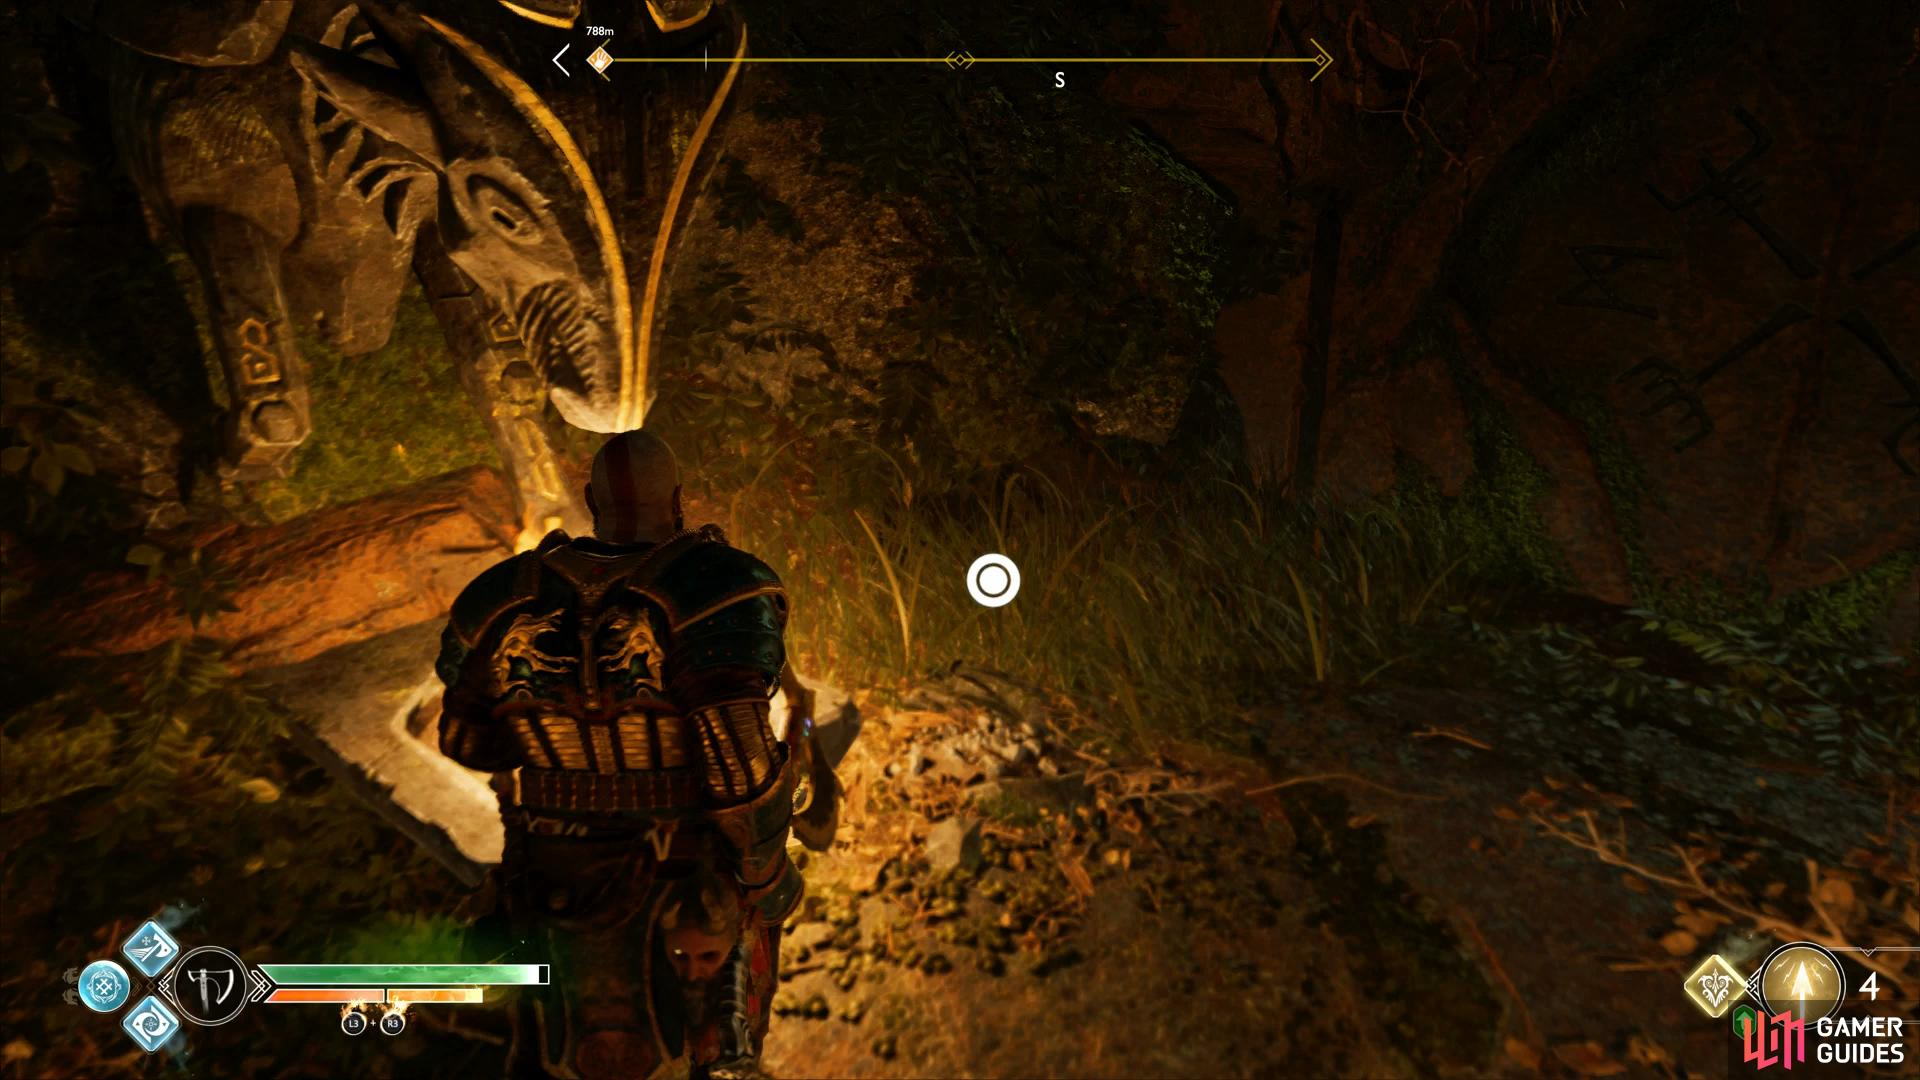 Check near the left brazier in front of the sealed door to find The Historian treasure